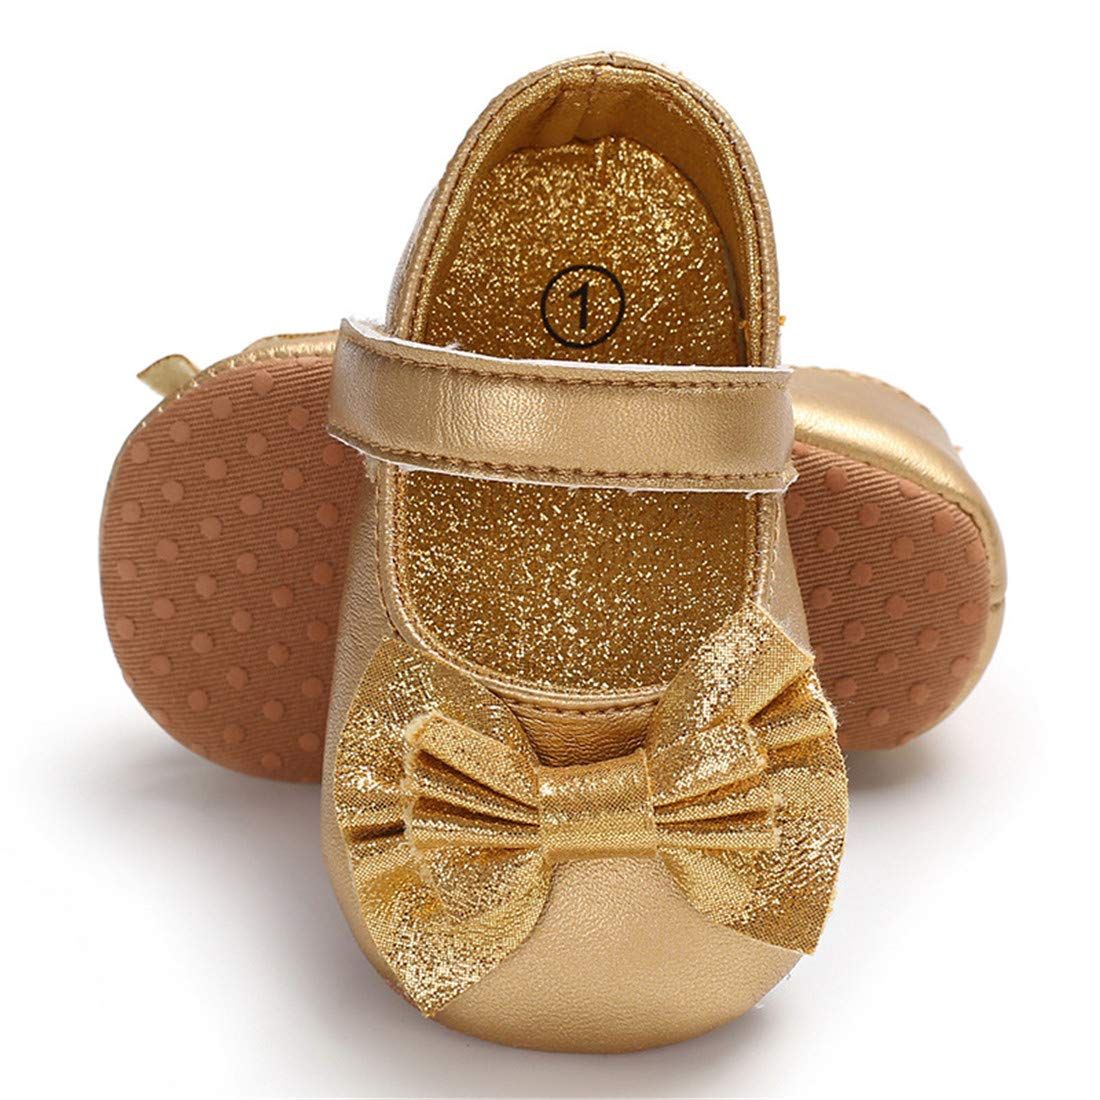 ENERCAKE Infant Baby Girls Shoes Non-Slip Bowknot Princess Dress Mary Jane Flats Toddler First Walker Baby Sneaker Shoes